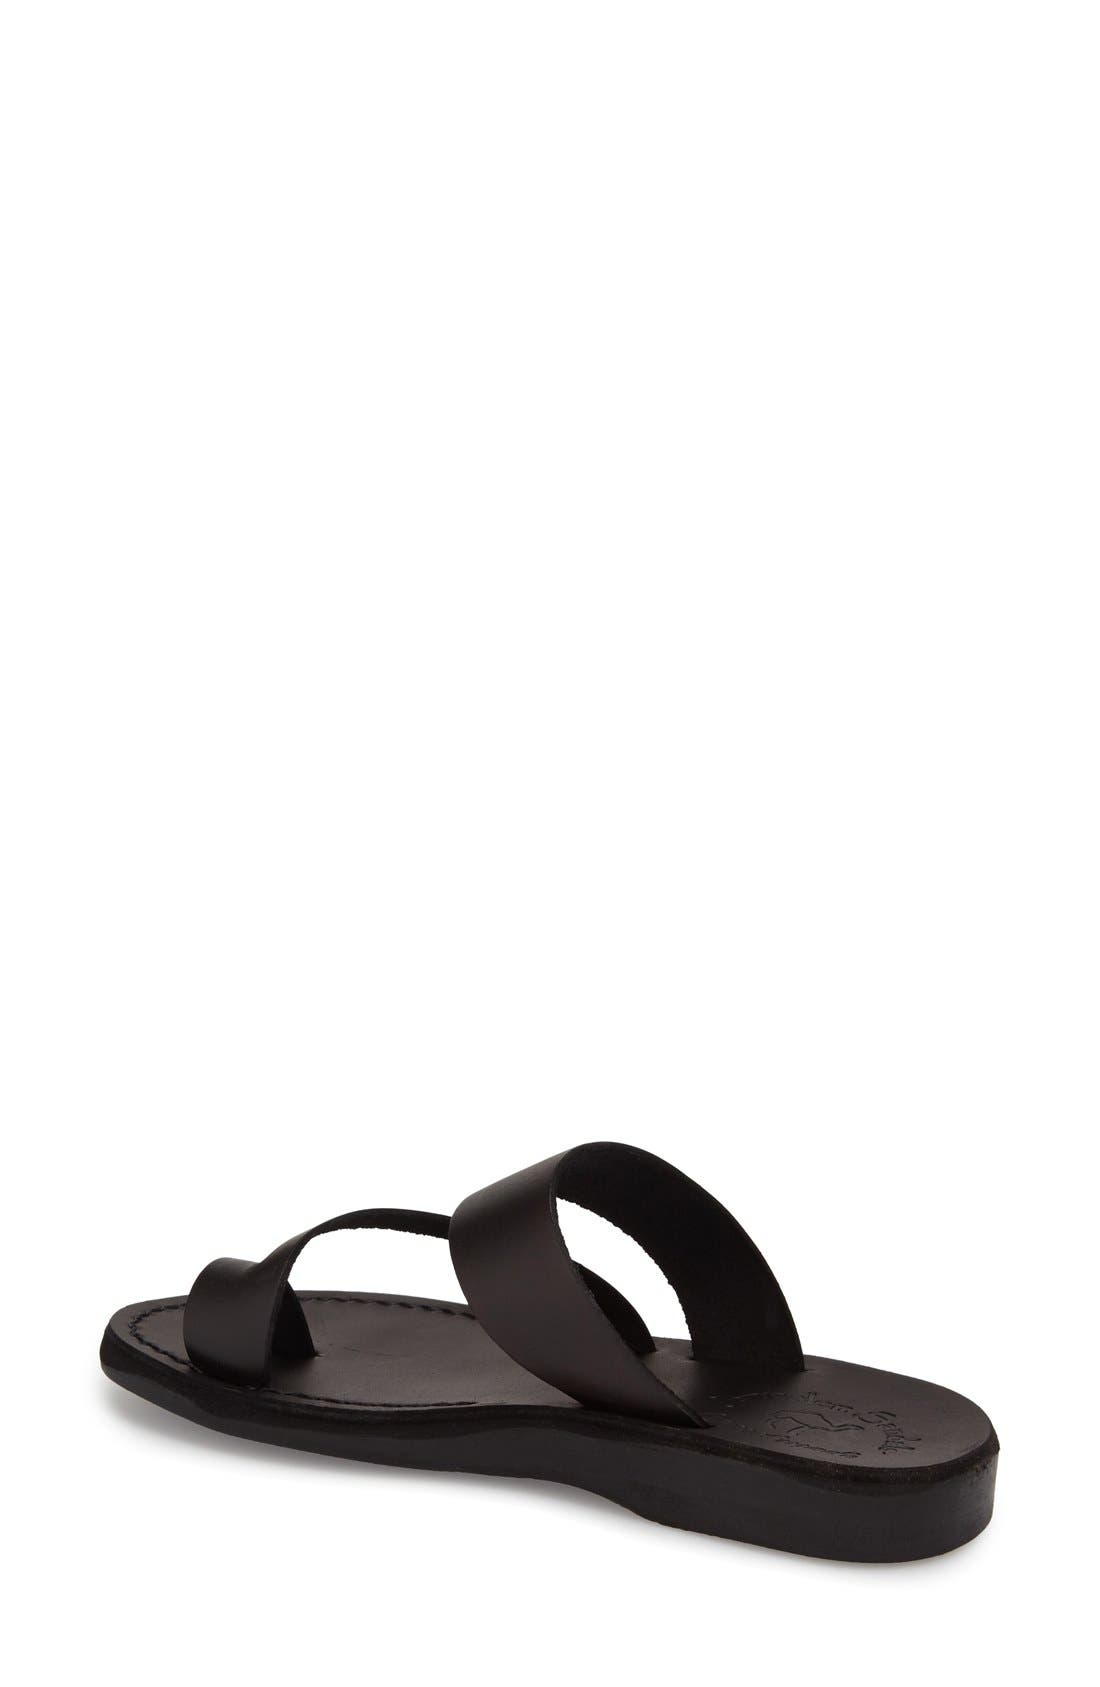 'Zohar' Leather Sandal,                             Alternate thumbnail 8, color,